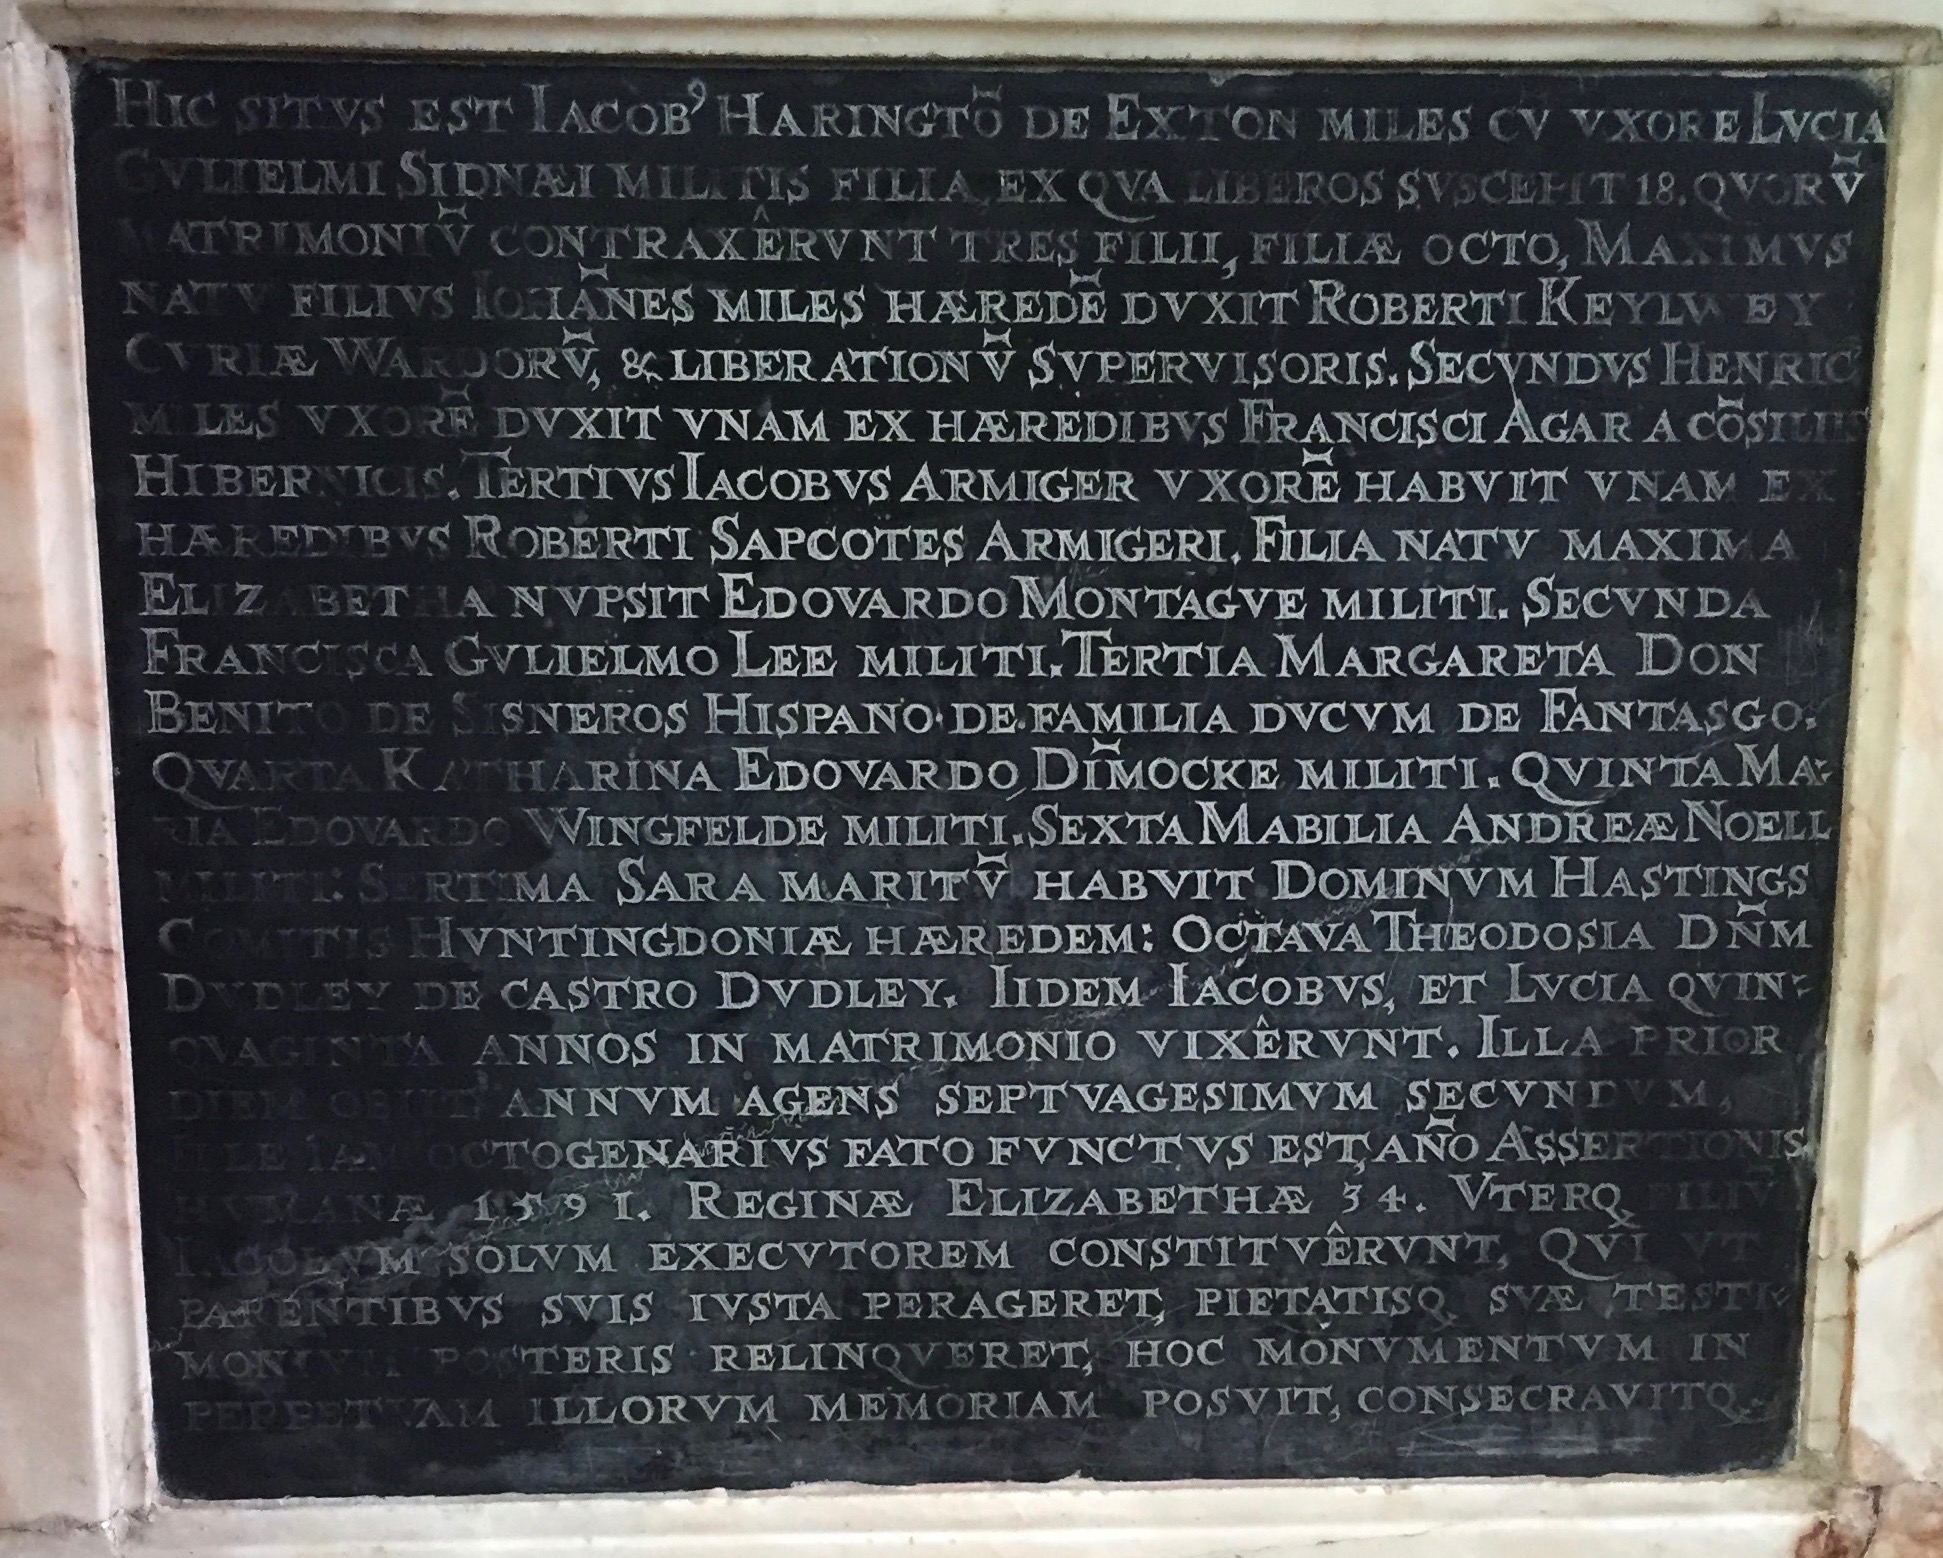 Memorial to Sir James Harington of Exton (1511-1592), father to Sir James and Sir John and great grandfather of James Harrington (1611-1677). Image by Rachel Hammersley.